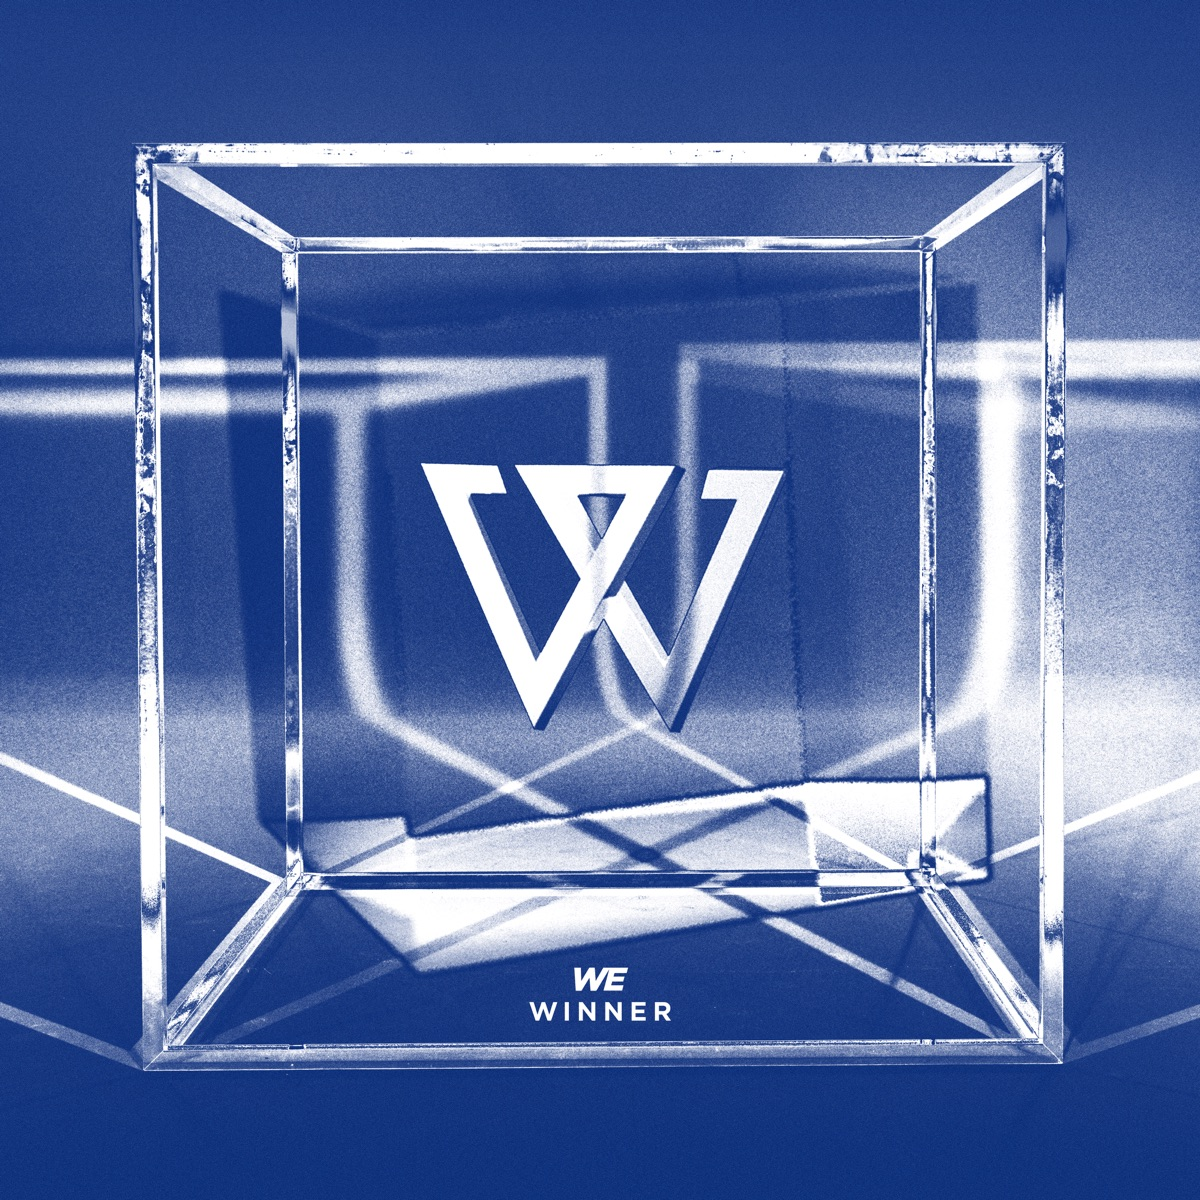 WE - EP WINNER CD cover